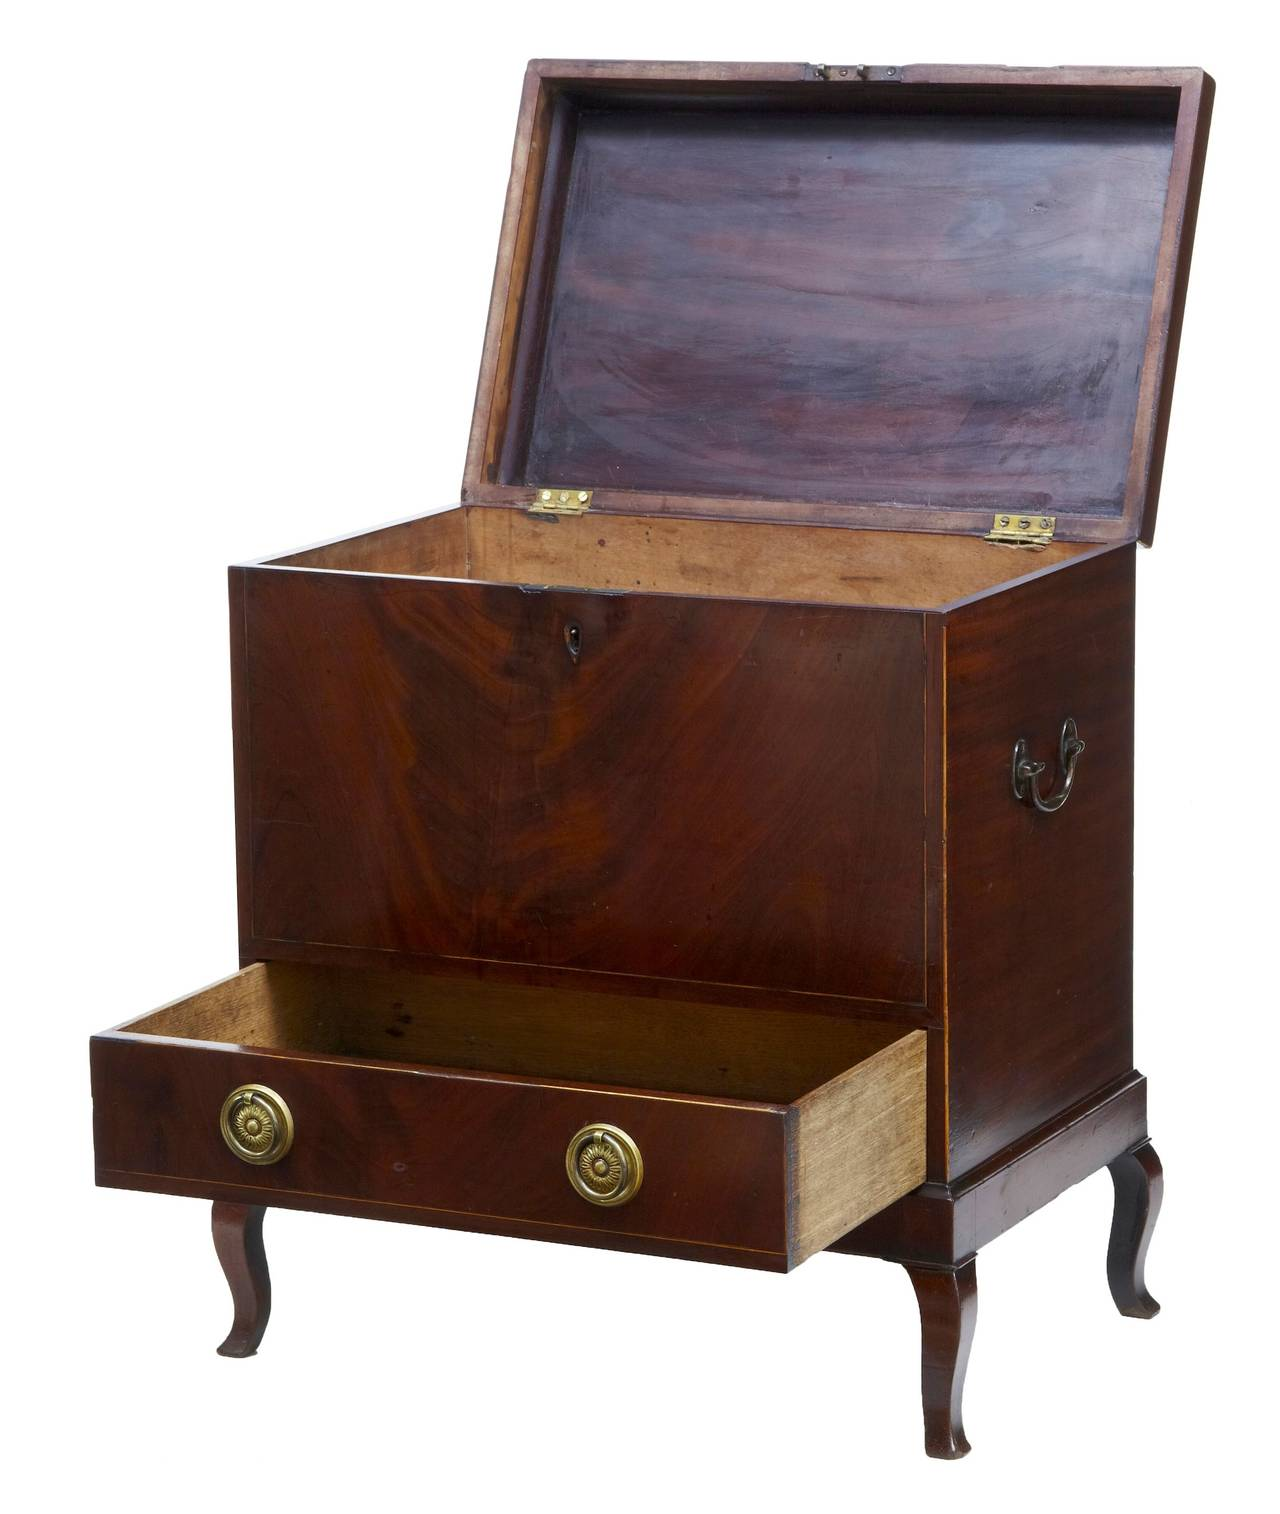 Edwardian wine cooler, circa 1905.   Fitted with compartments and a single drawer below.  Marks and repairs (see pictures)  Measures: Height: 24